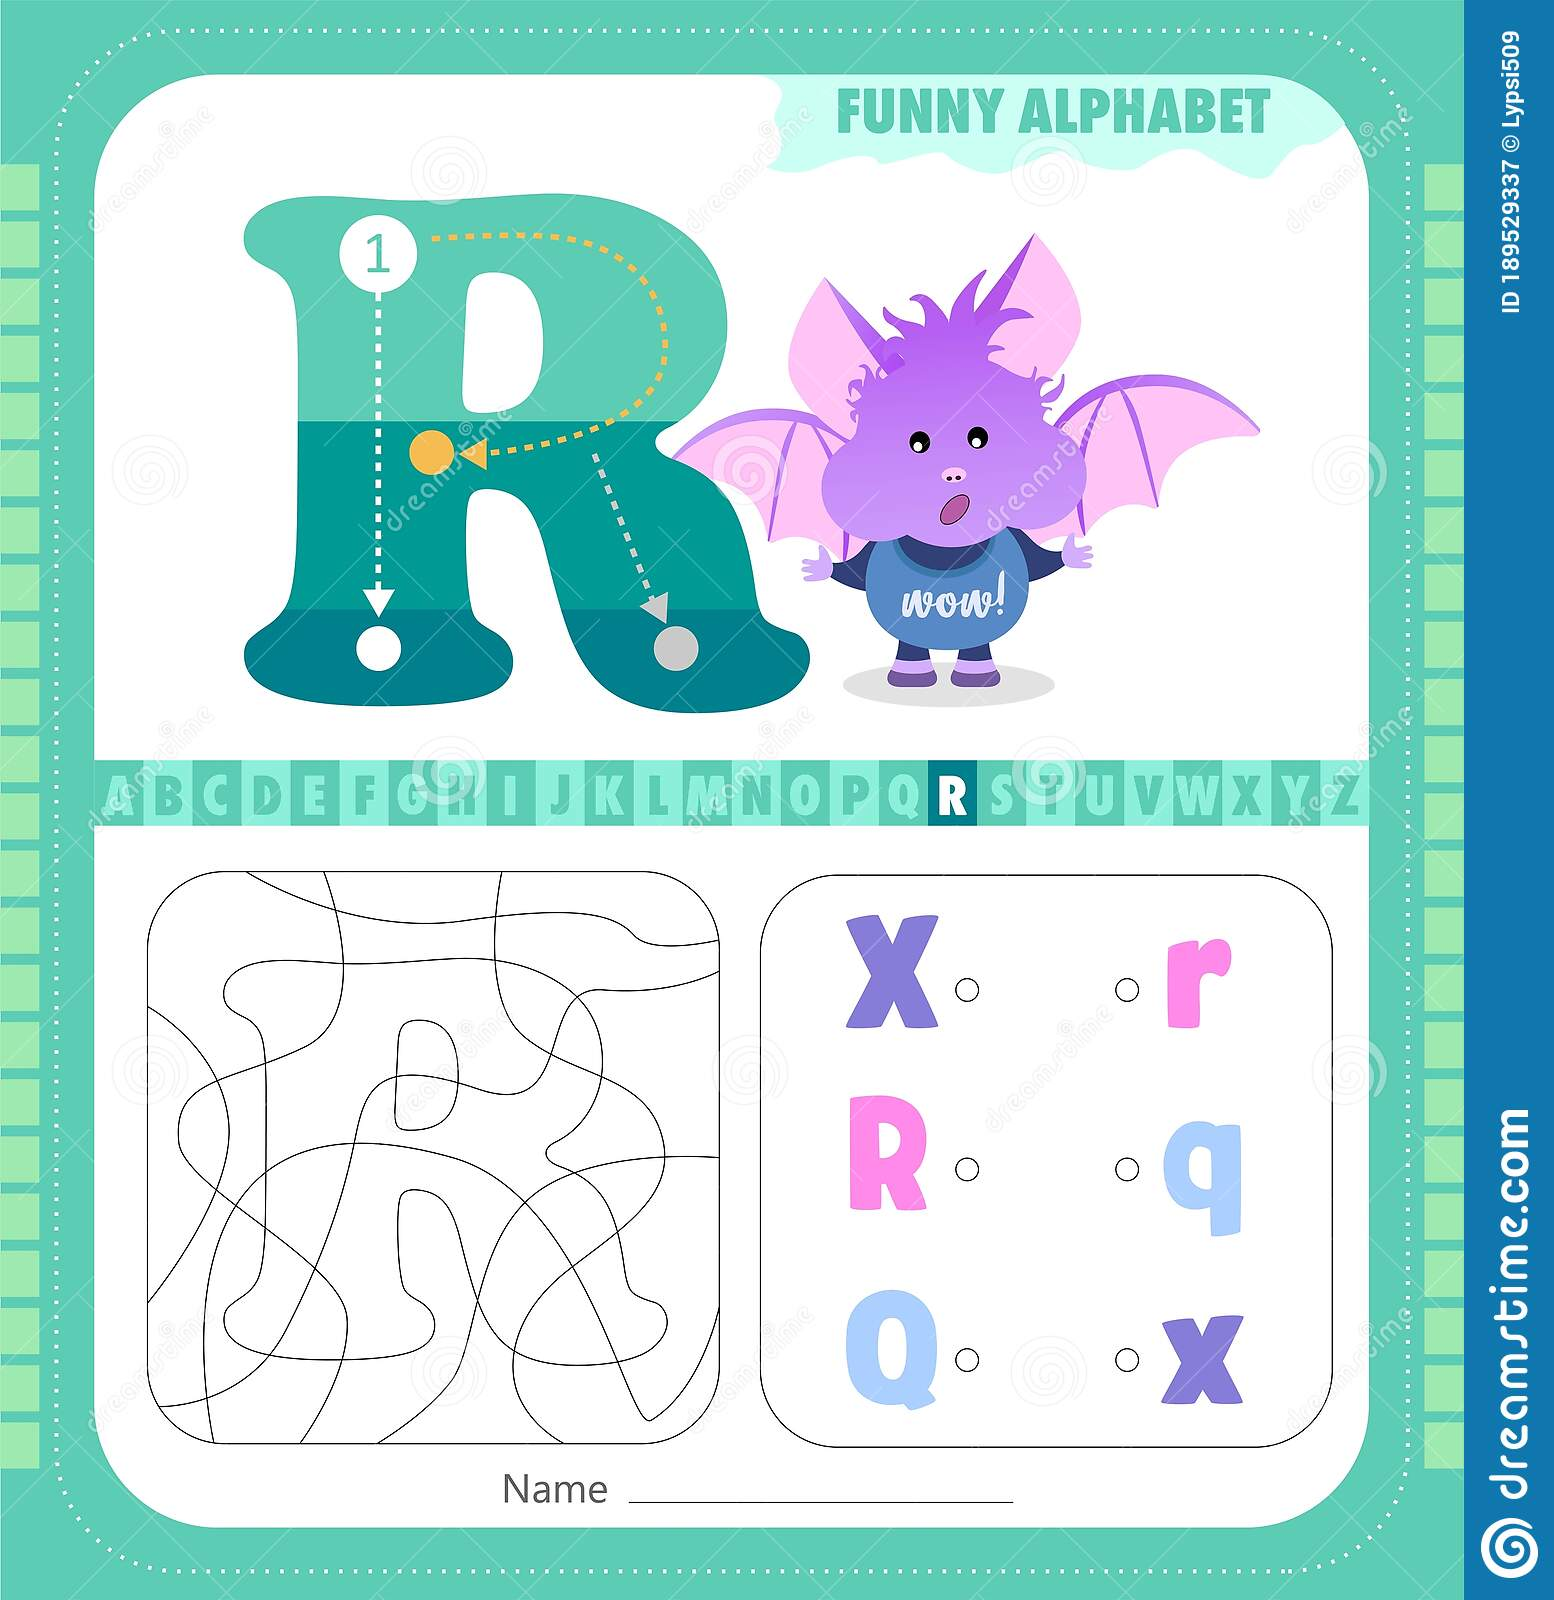 Letter R And Funny Cartoon Bat Alphabet A Z Coloring Page Printable Worksheet Stock Vector Illustration Of Kindergarten Book 189529337